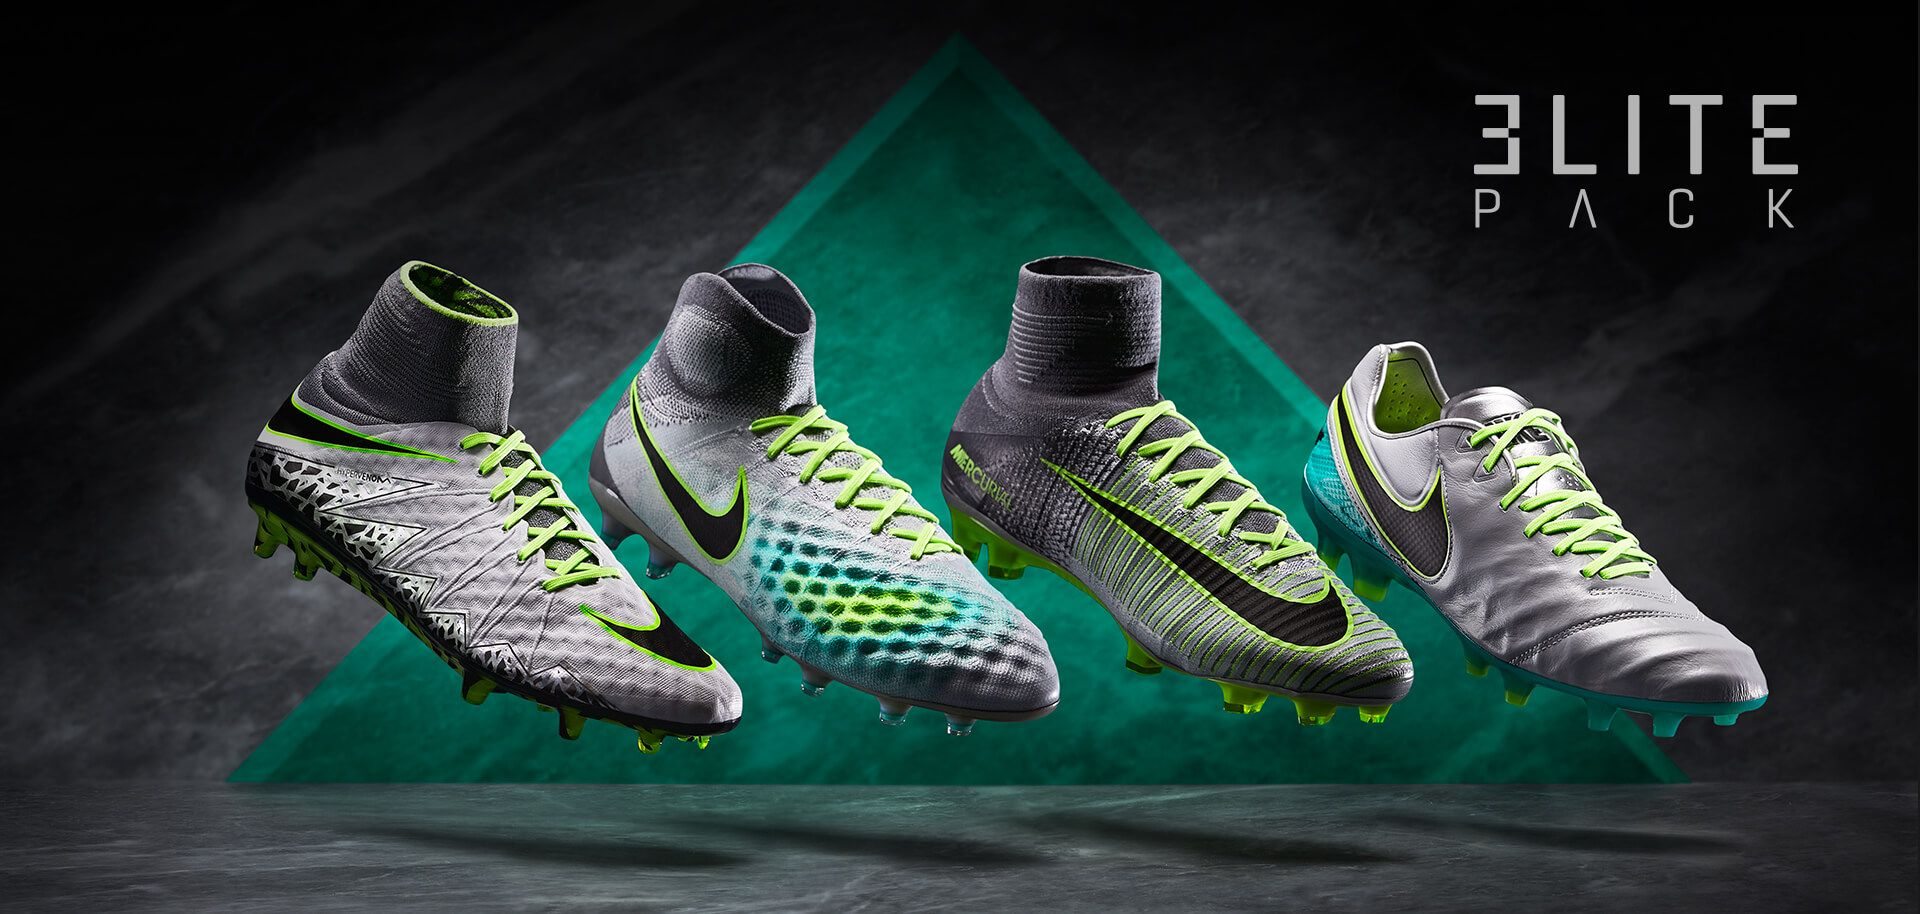 info for bd033 20793 ProDirect Soccer - Nike Elite Pack Football Boots - Hypervenom II, Magista  II…